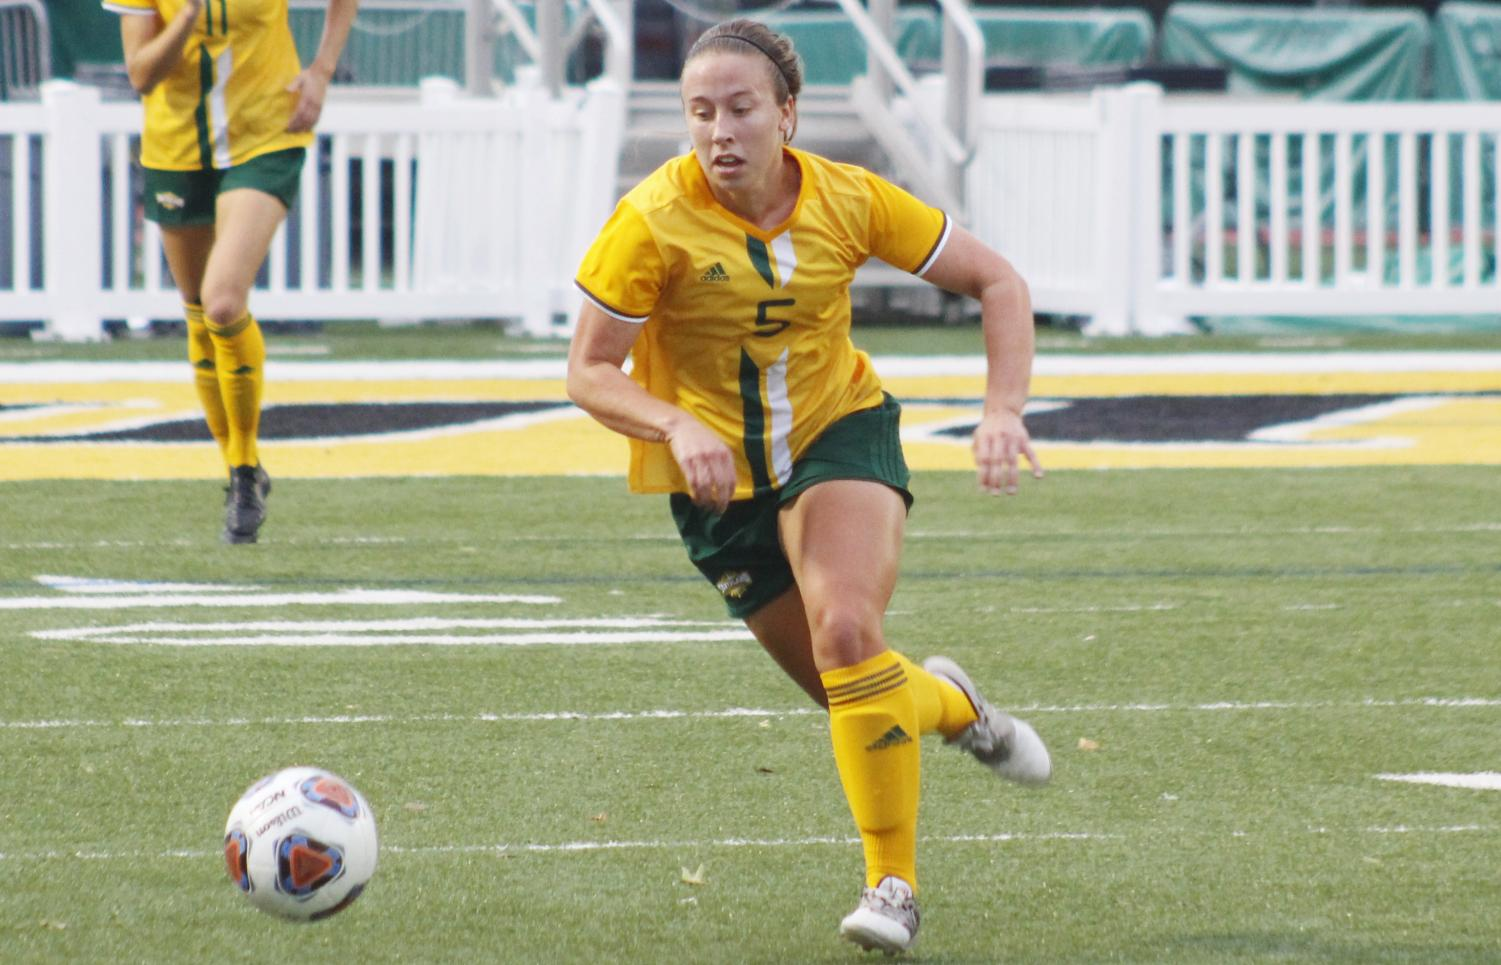 Kim Porche, a 2017 senior defender, was a part of the soccer team, which has several players with nicknames.